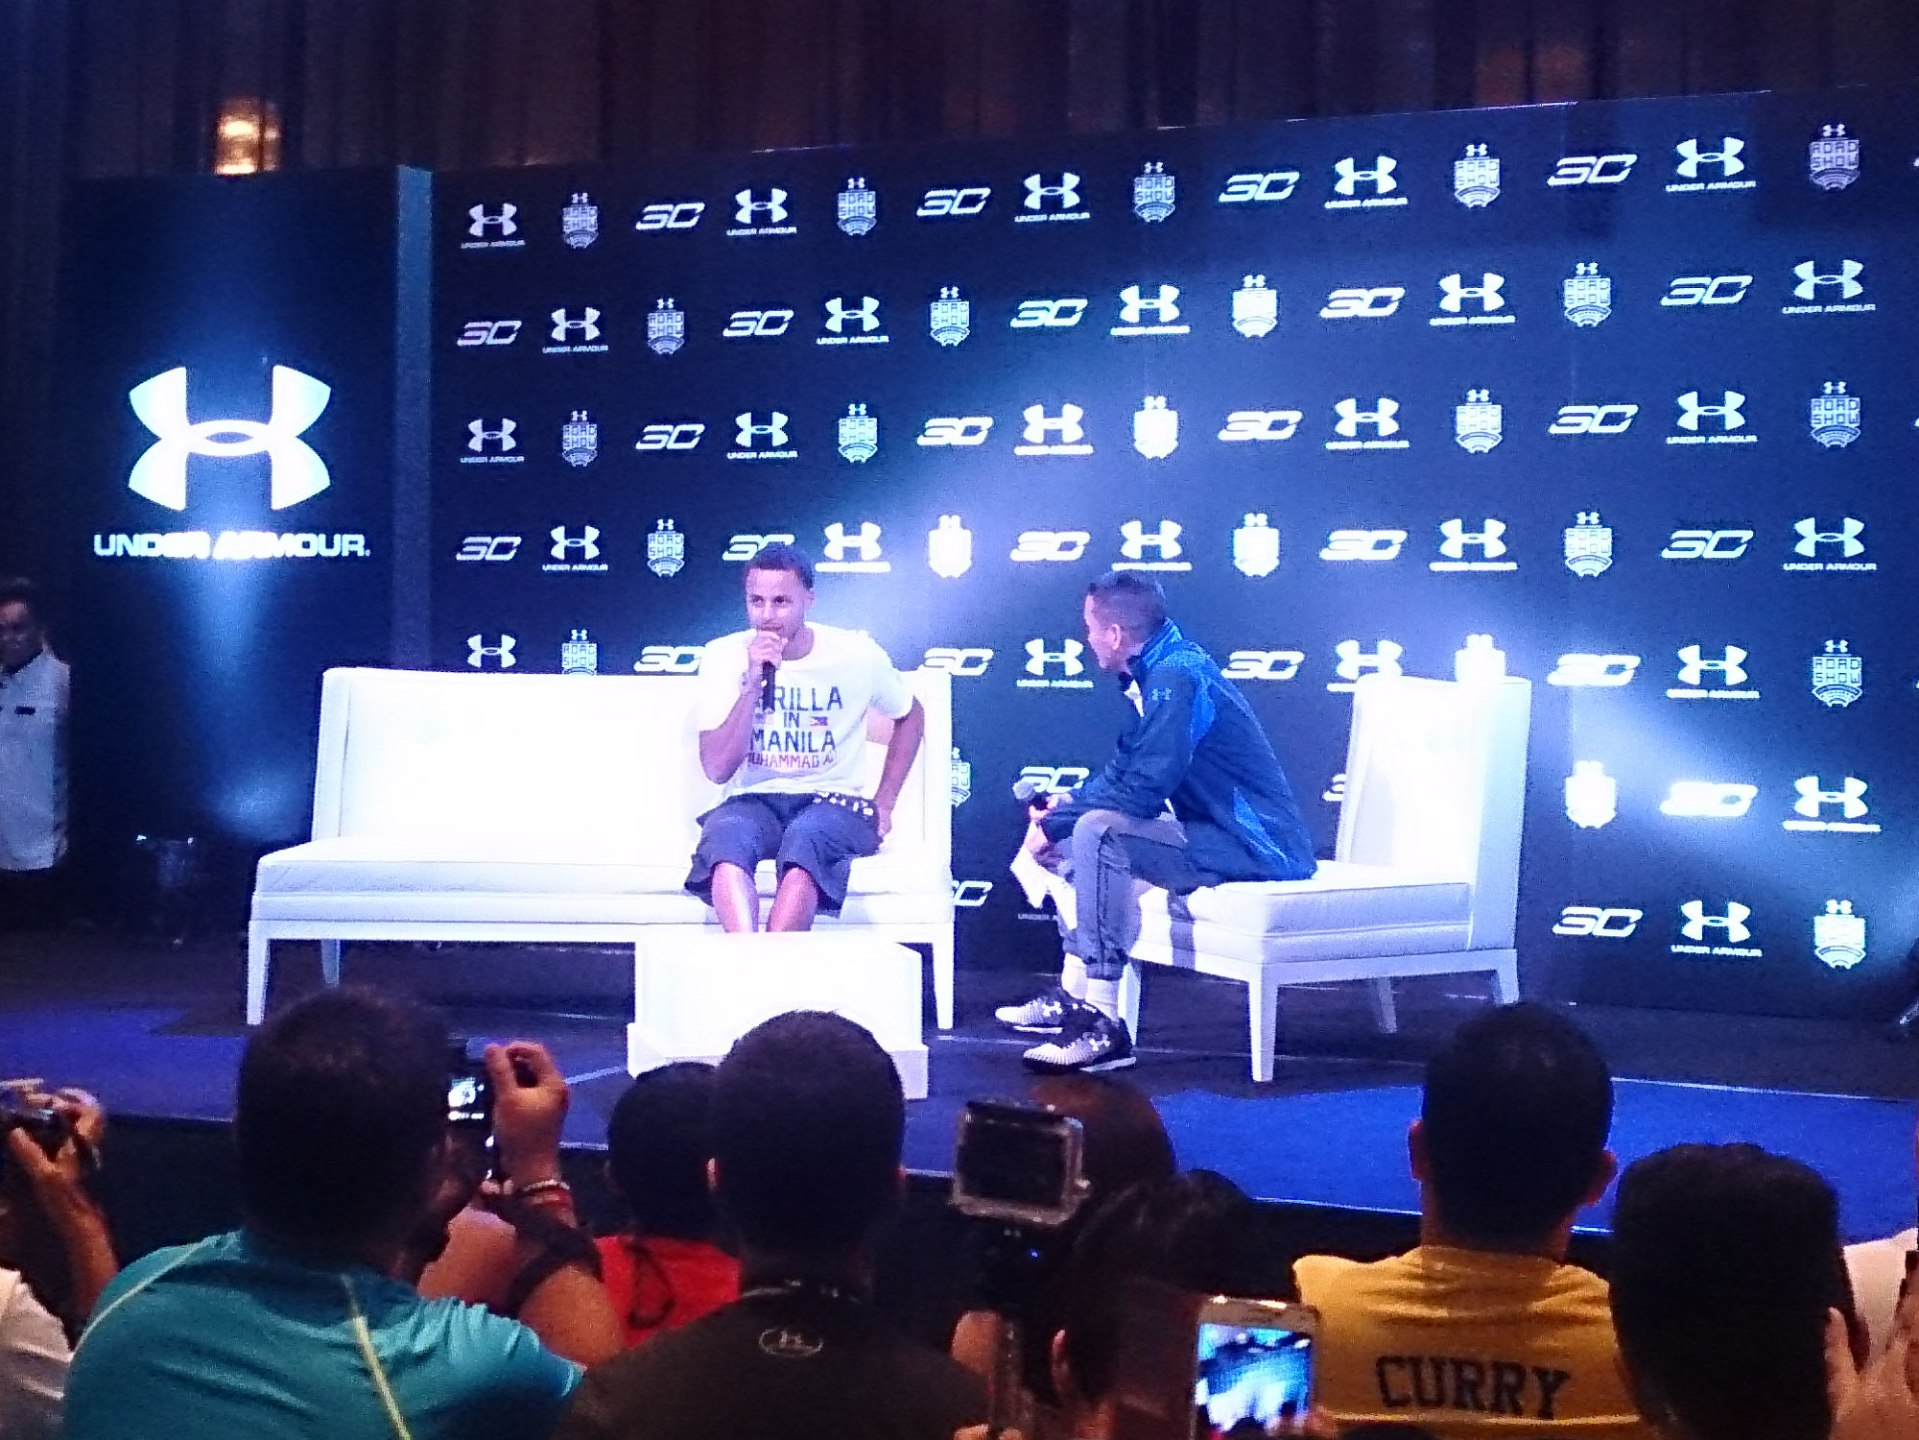 Under Armour Roadshow featuring Stephen Curry